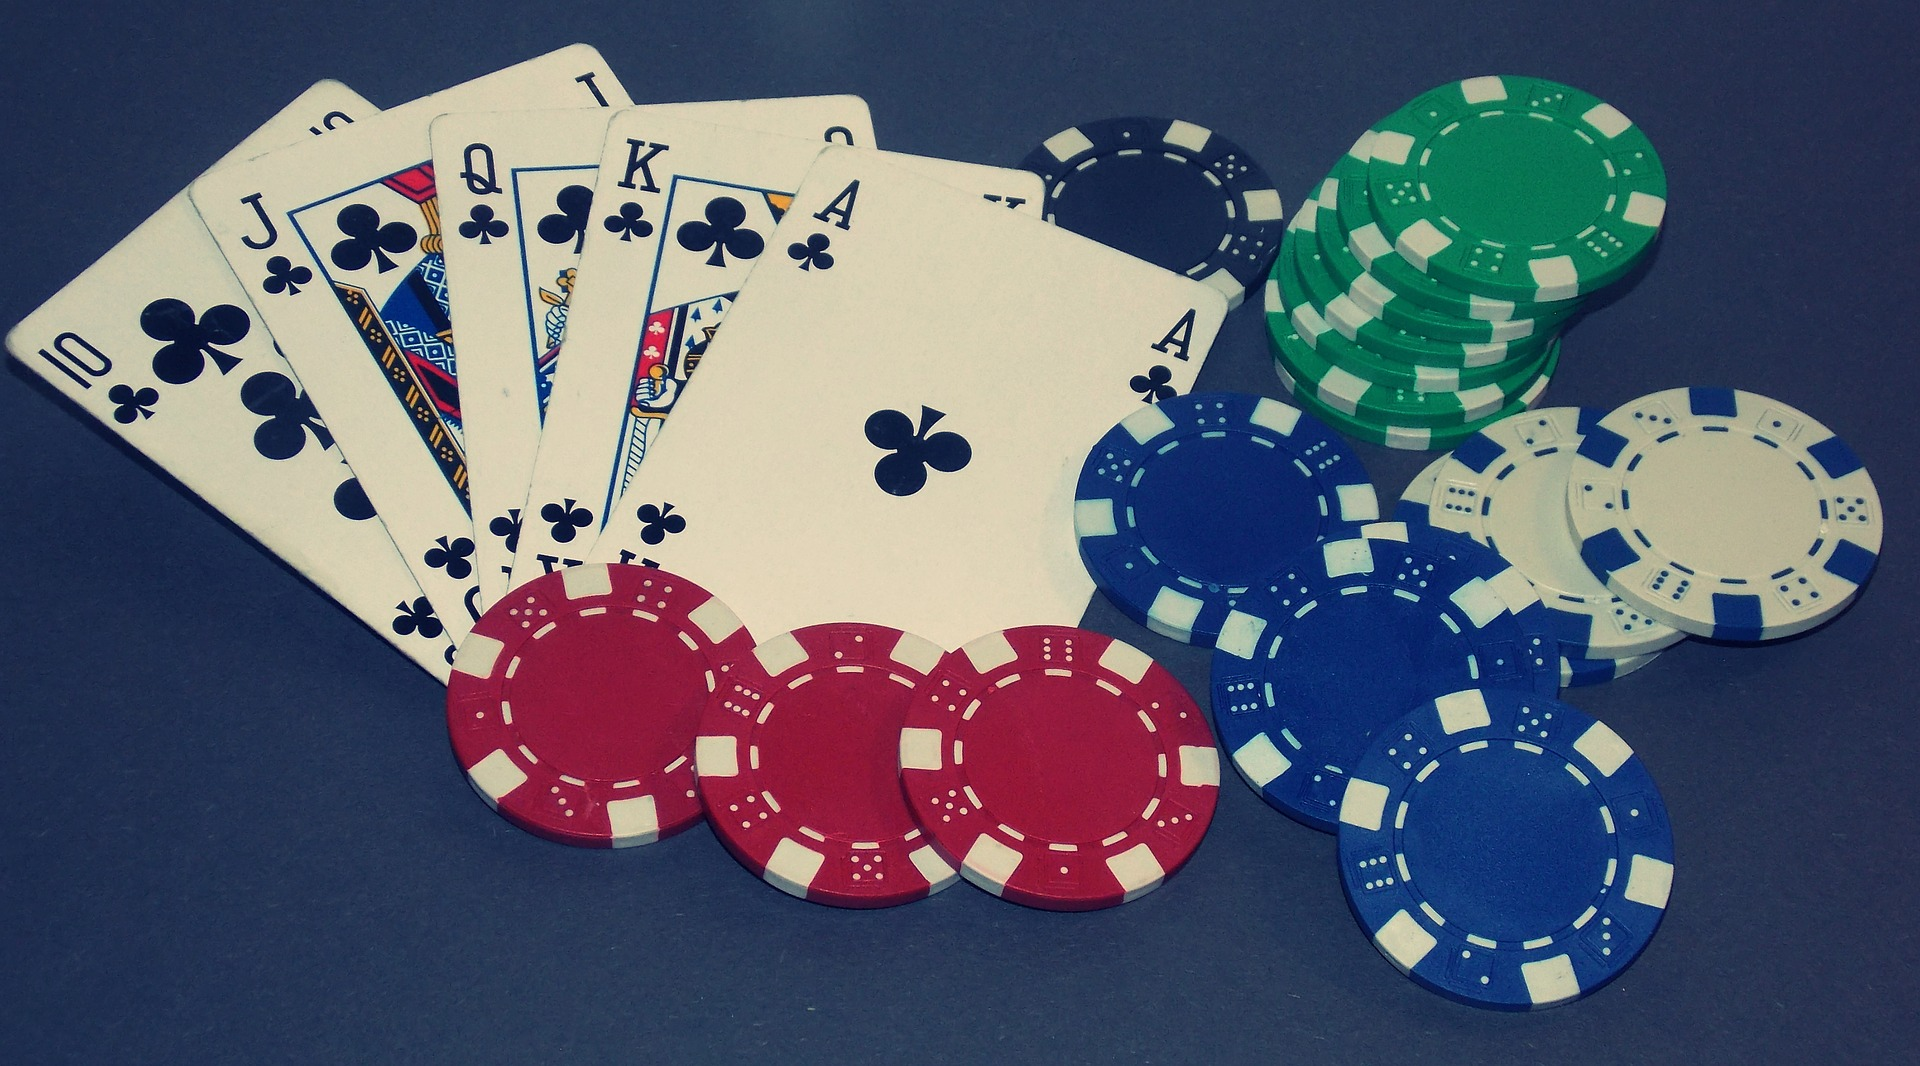 The Bitcoin Payouts over Online Poker Sites have Increased Exponentially Amid Price Gain